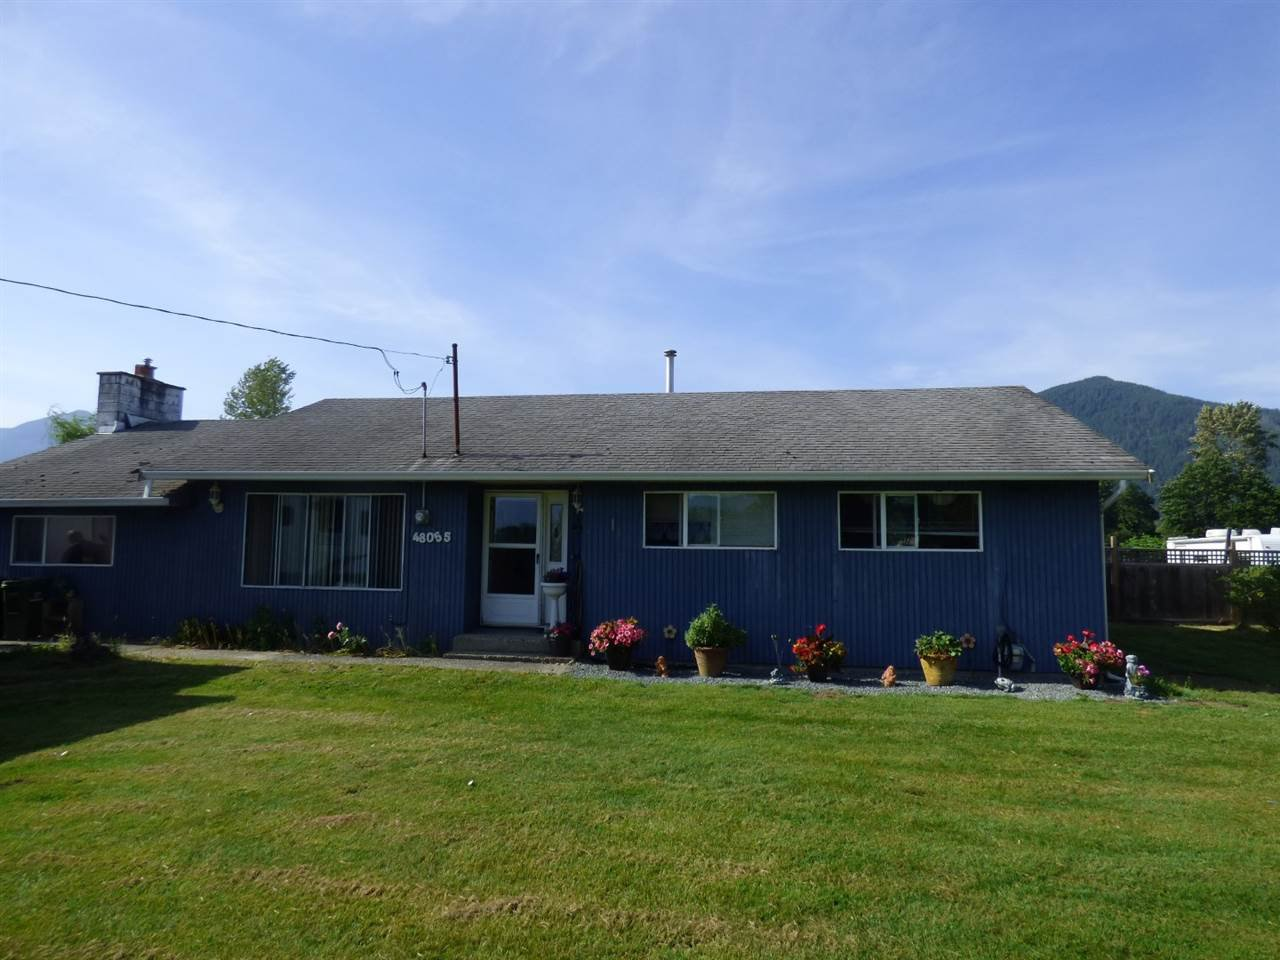 Main Photo: 48055 KITCHEN HALL Road in Chilliwack: Fairfield Island House for sale : MLS®# R2376304